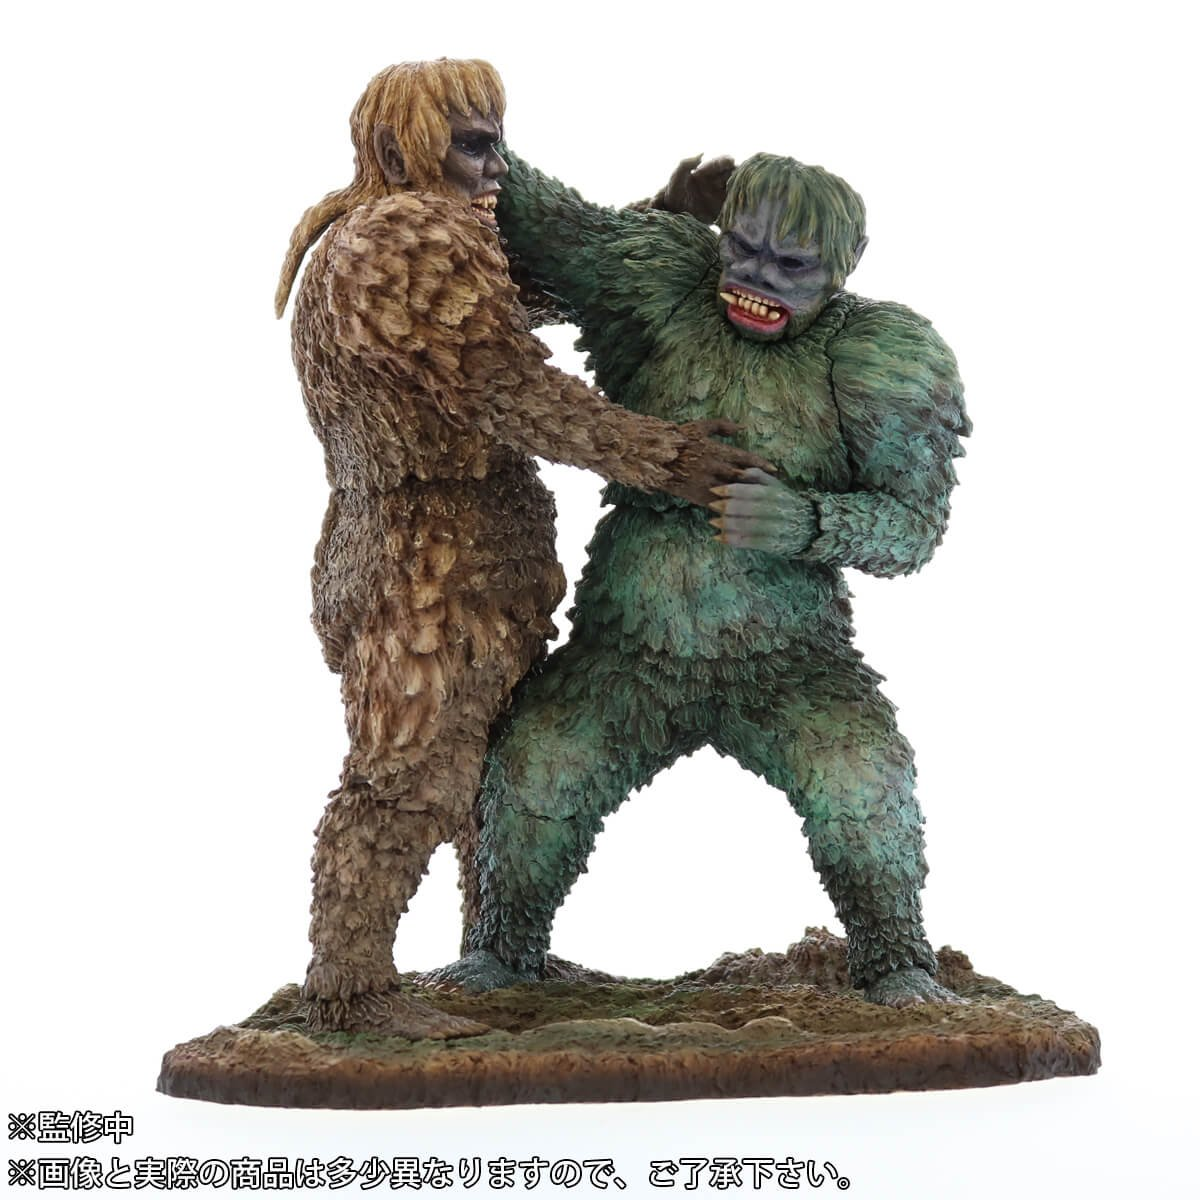 Toho Large Monster Series Sanda vs. Guyra Shonen Rick Limited Edition 7